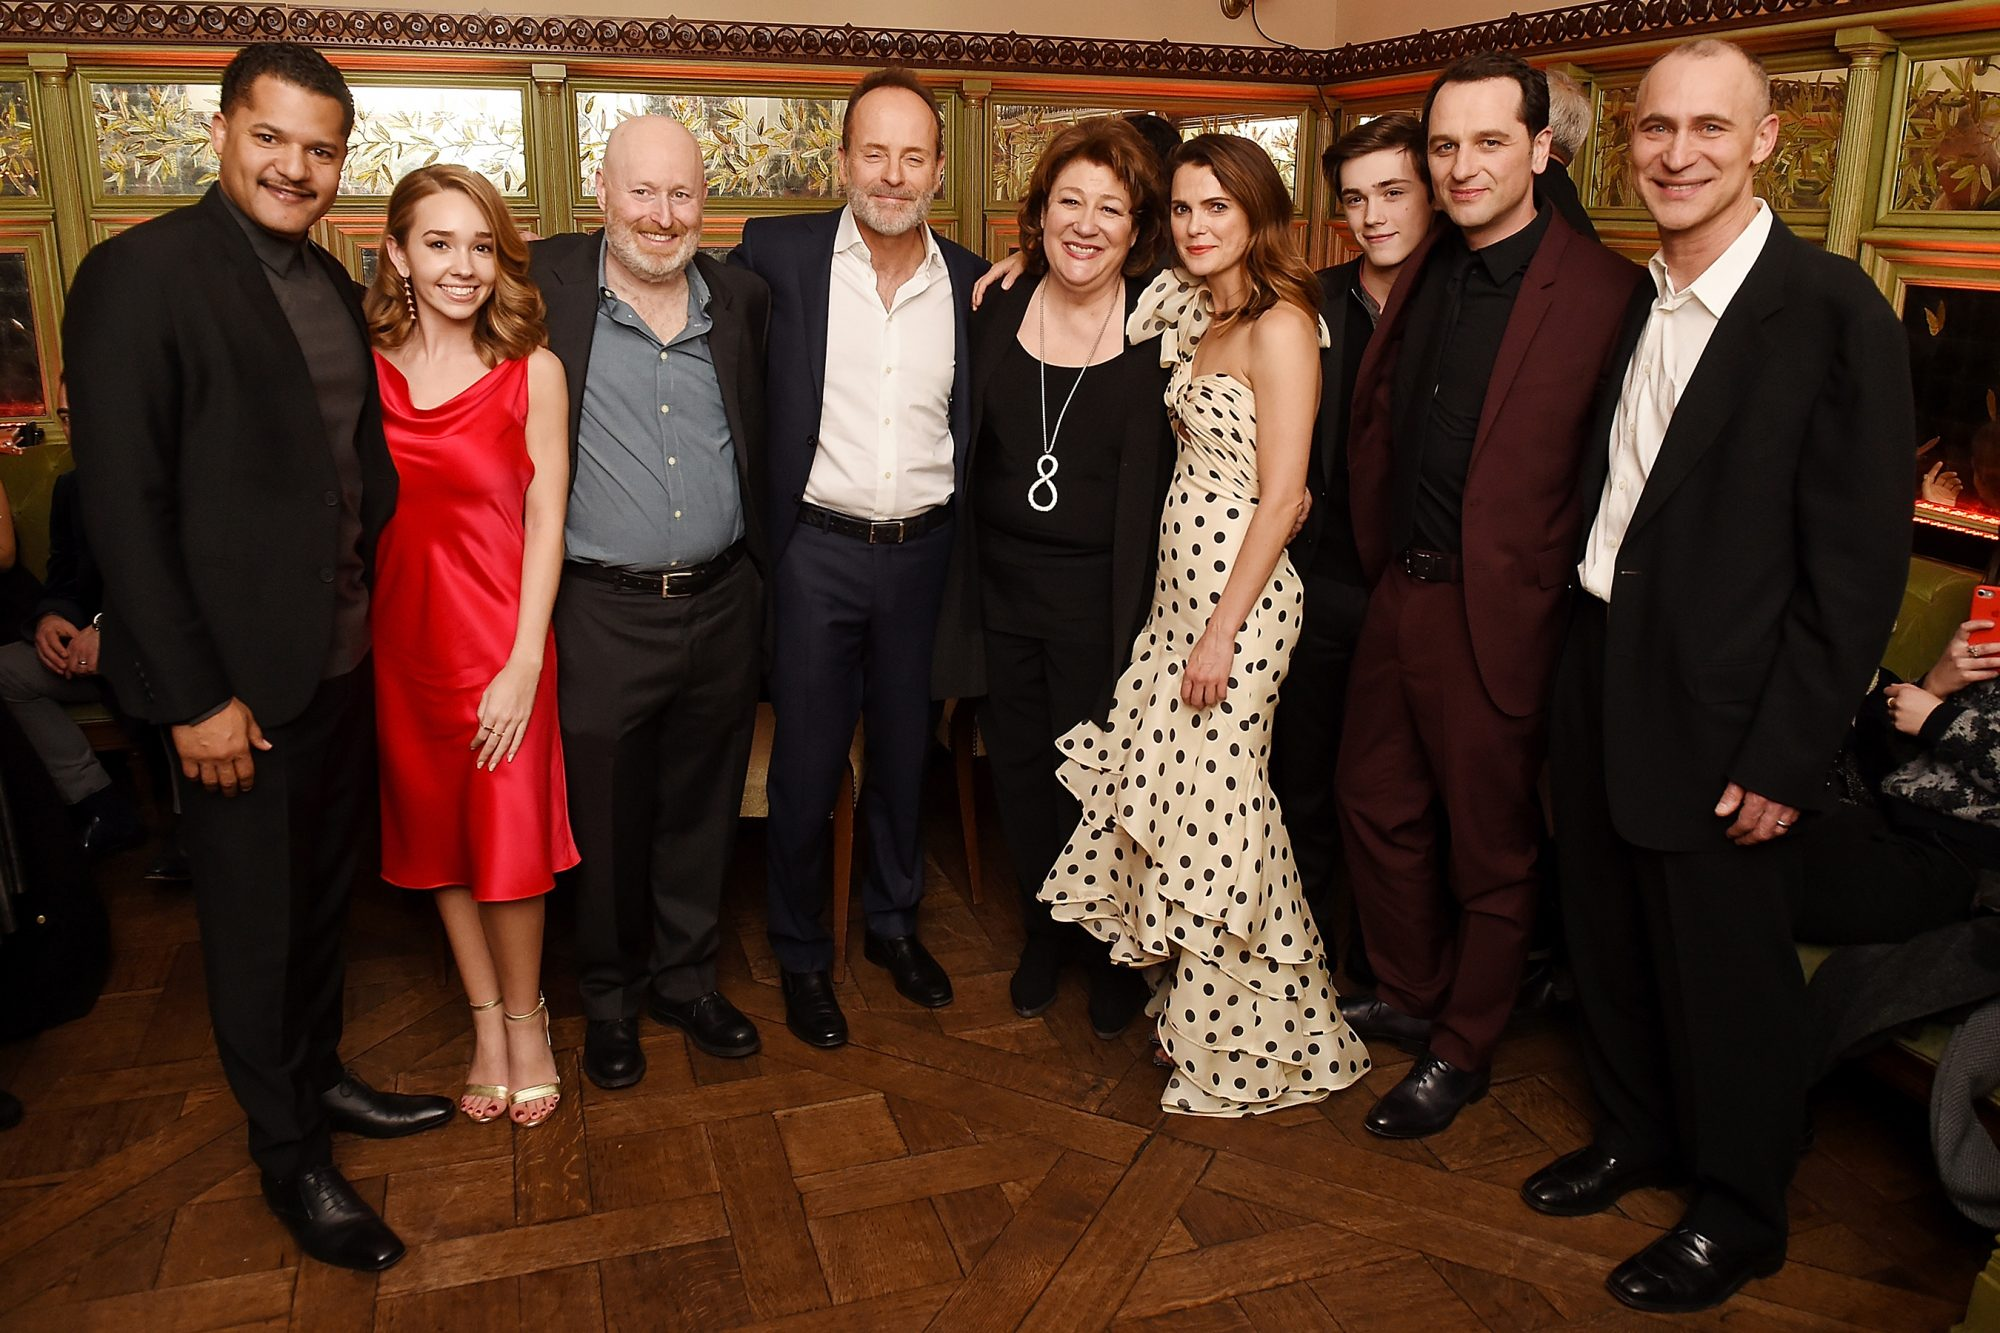 """The Americans"" Season 6 Premiere - After Party"